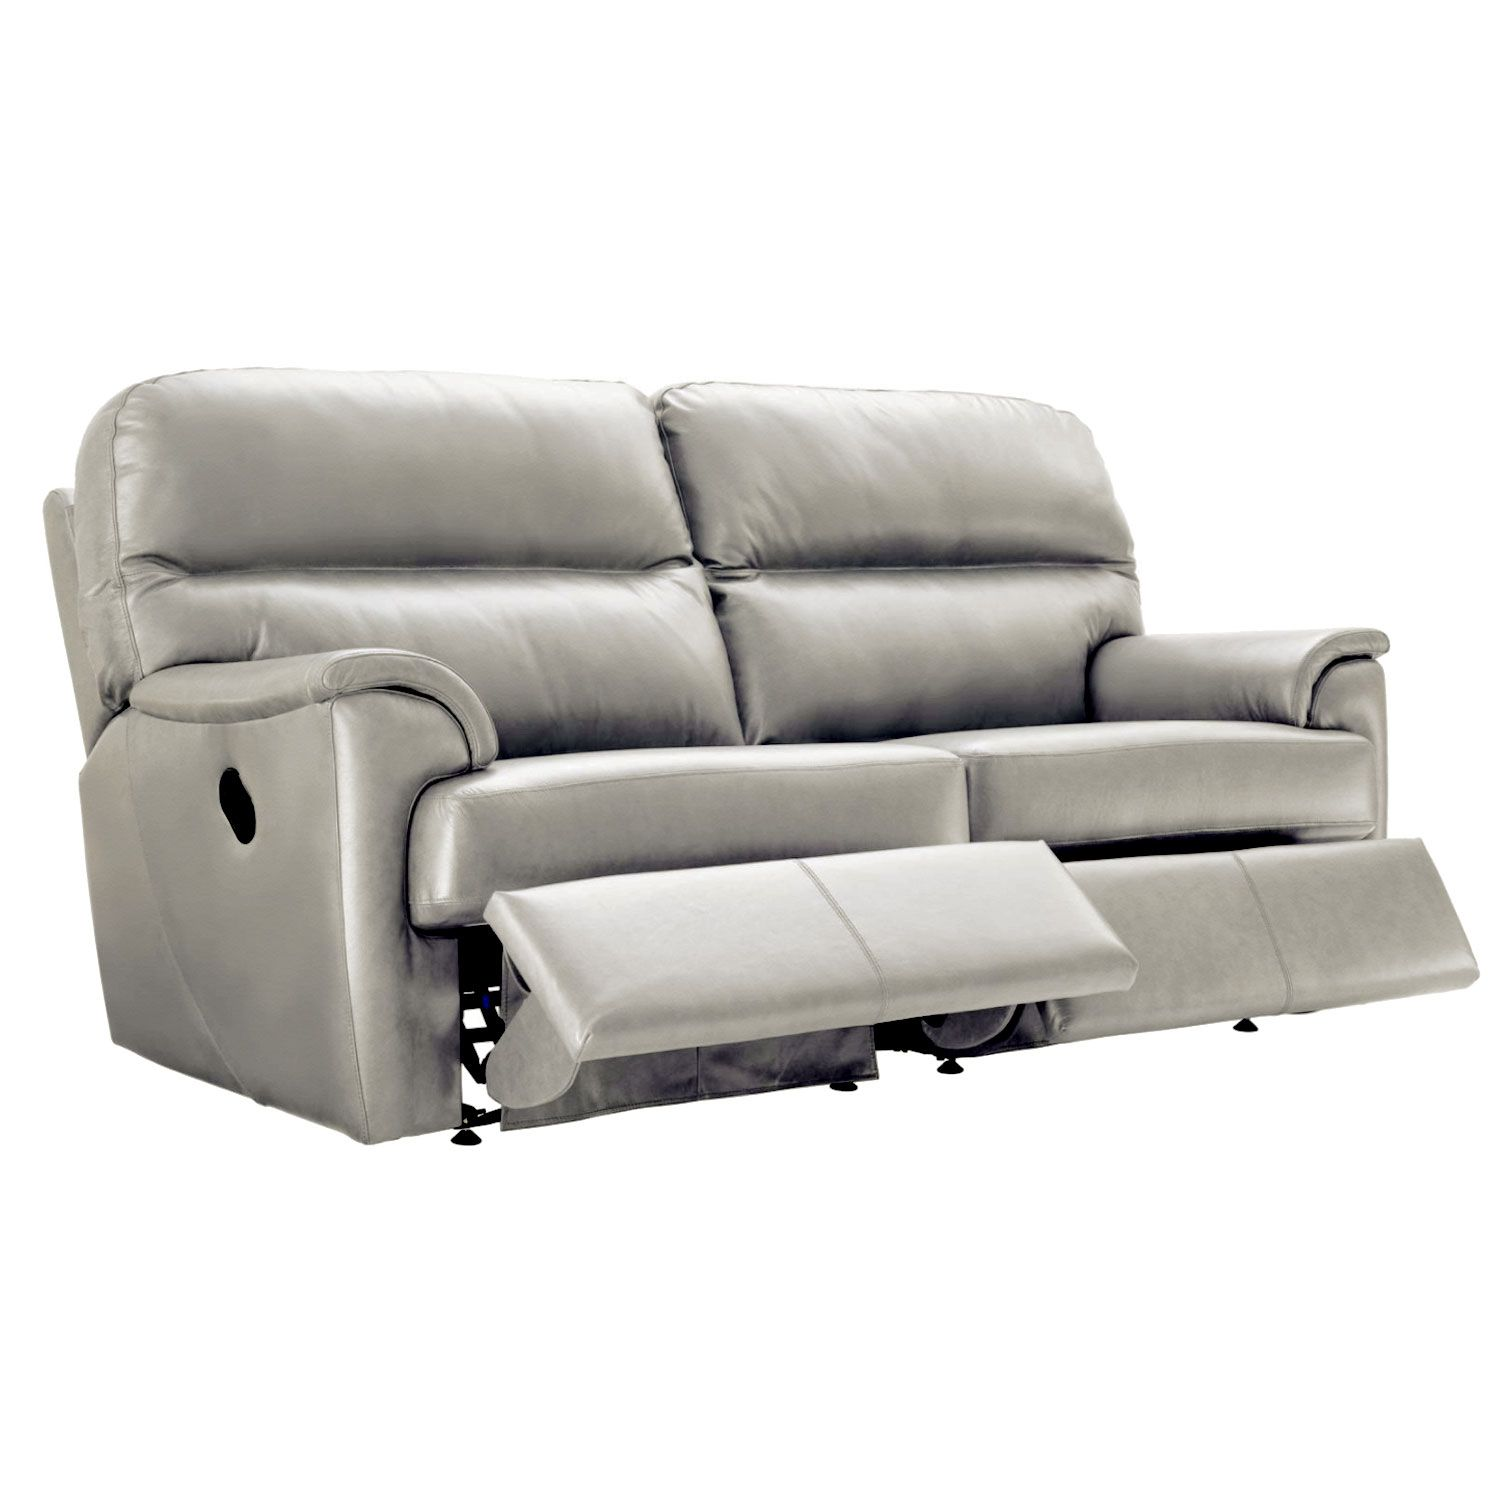 Image of G Plan Watson 3 Seater Double Recliner Leather Sofa